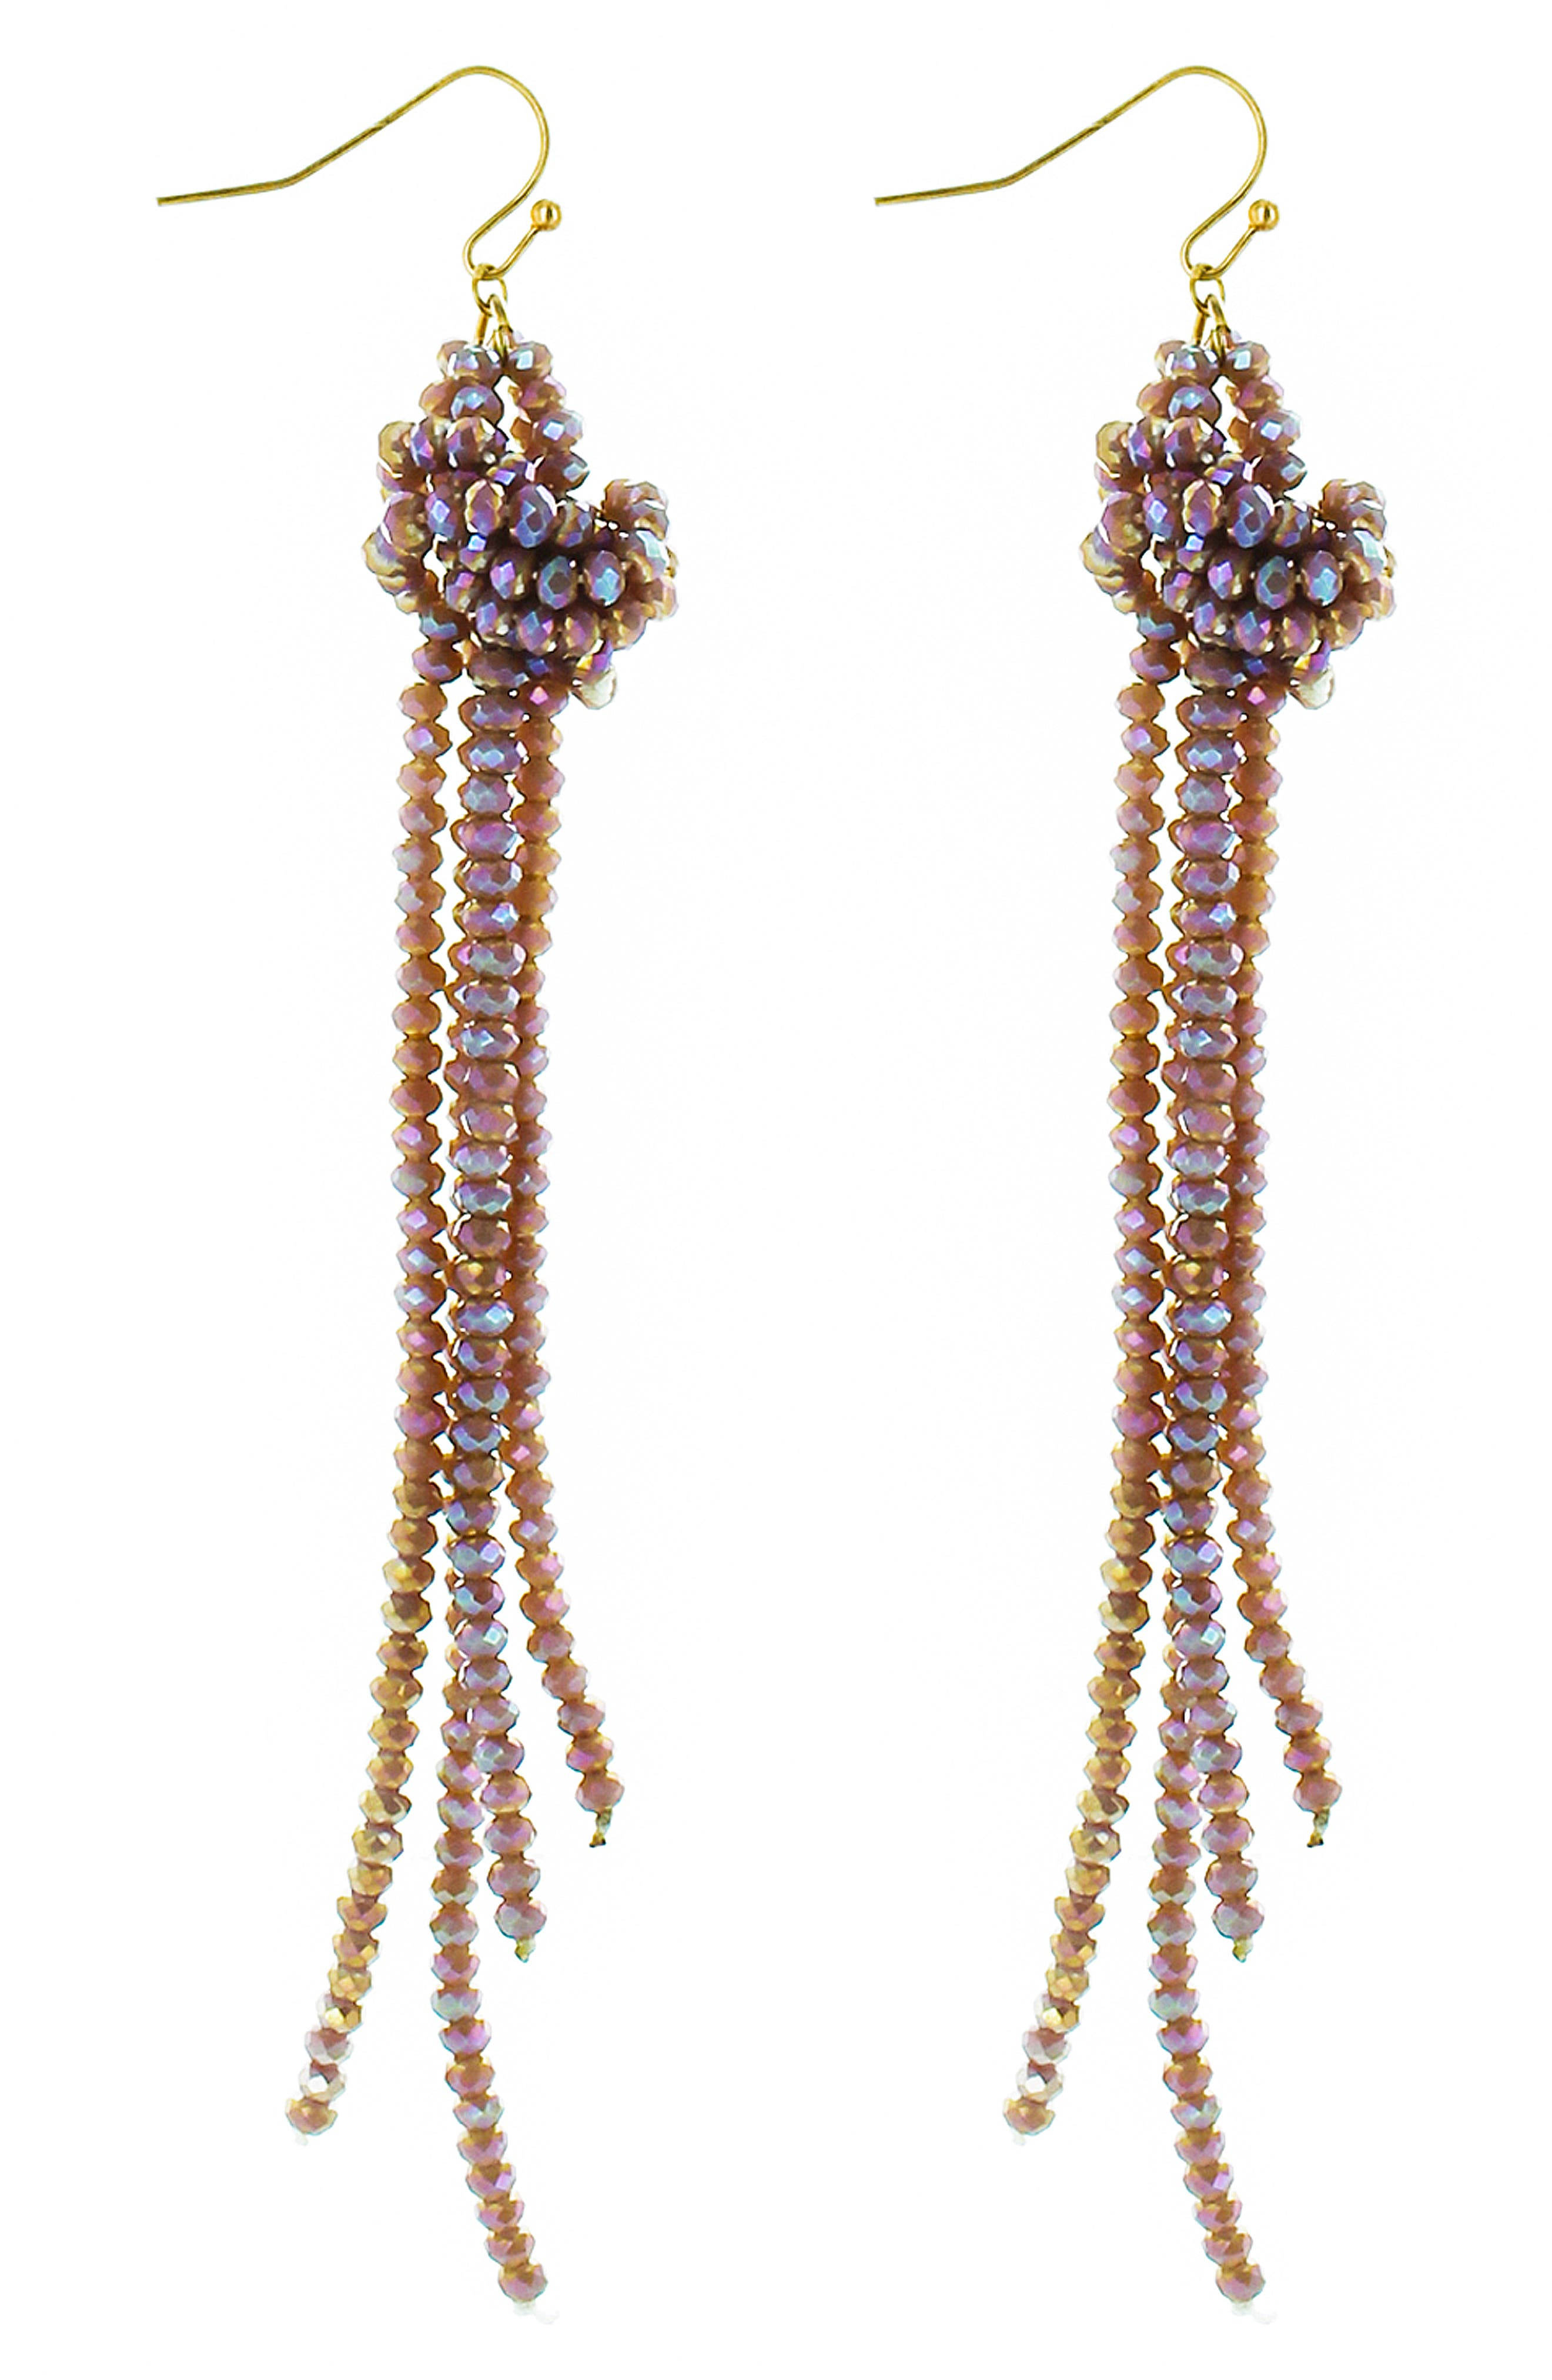 Crystal Knot Tassel Earrings,                             Main thumbnail 1, color,                             LIGHT PURPLE